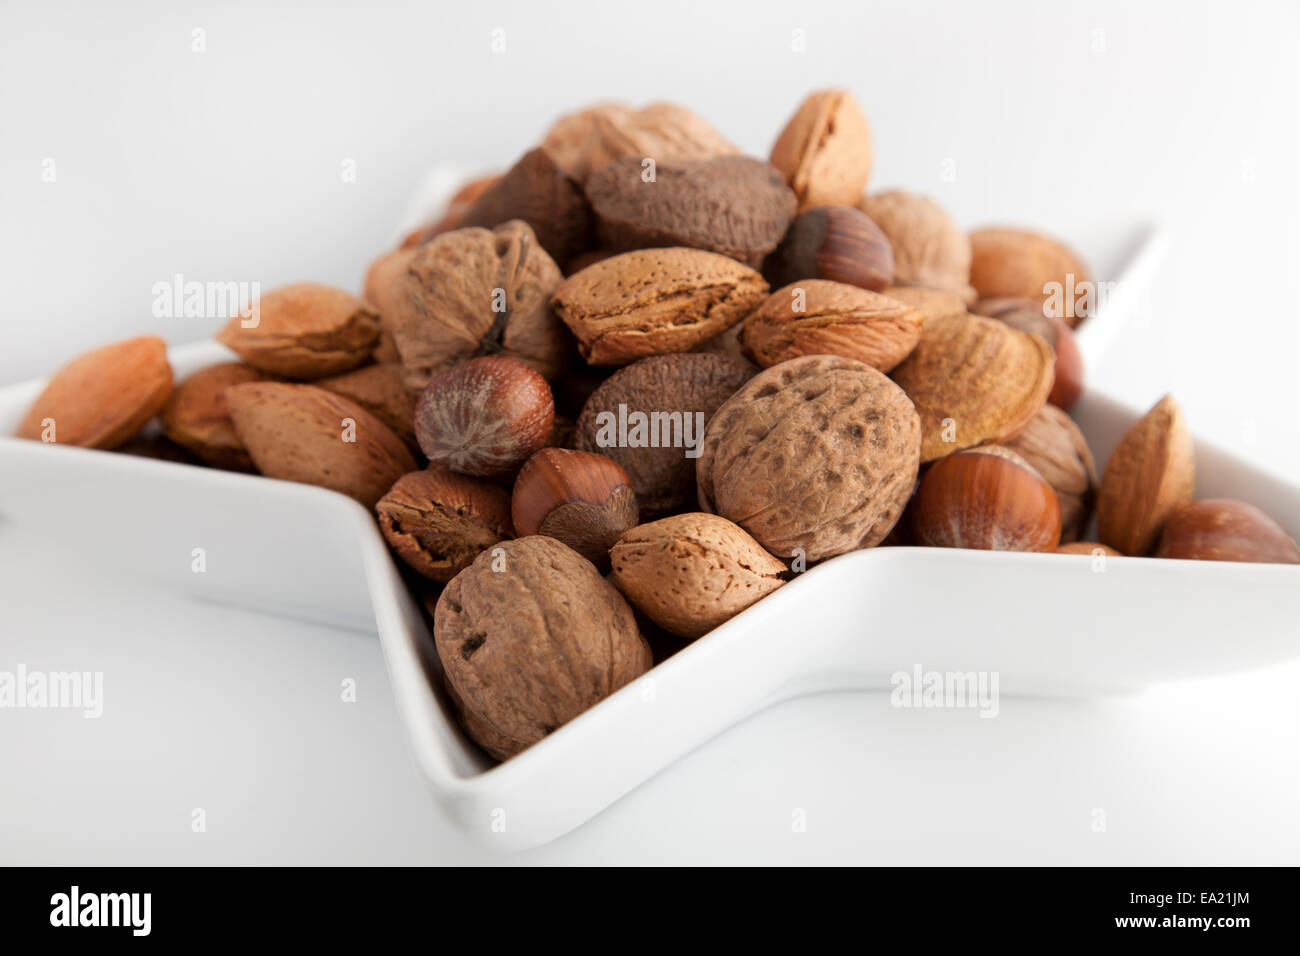 nuts in a bowl - Stock Image